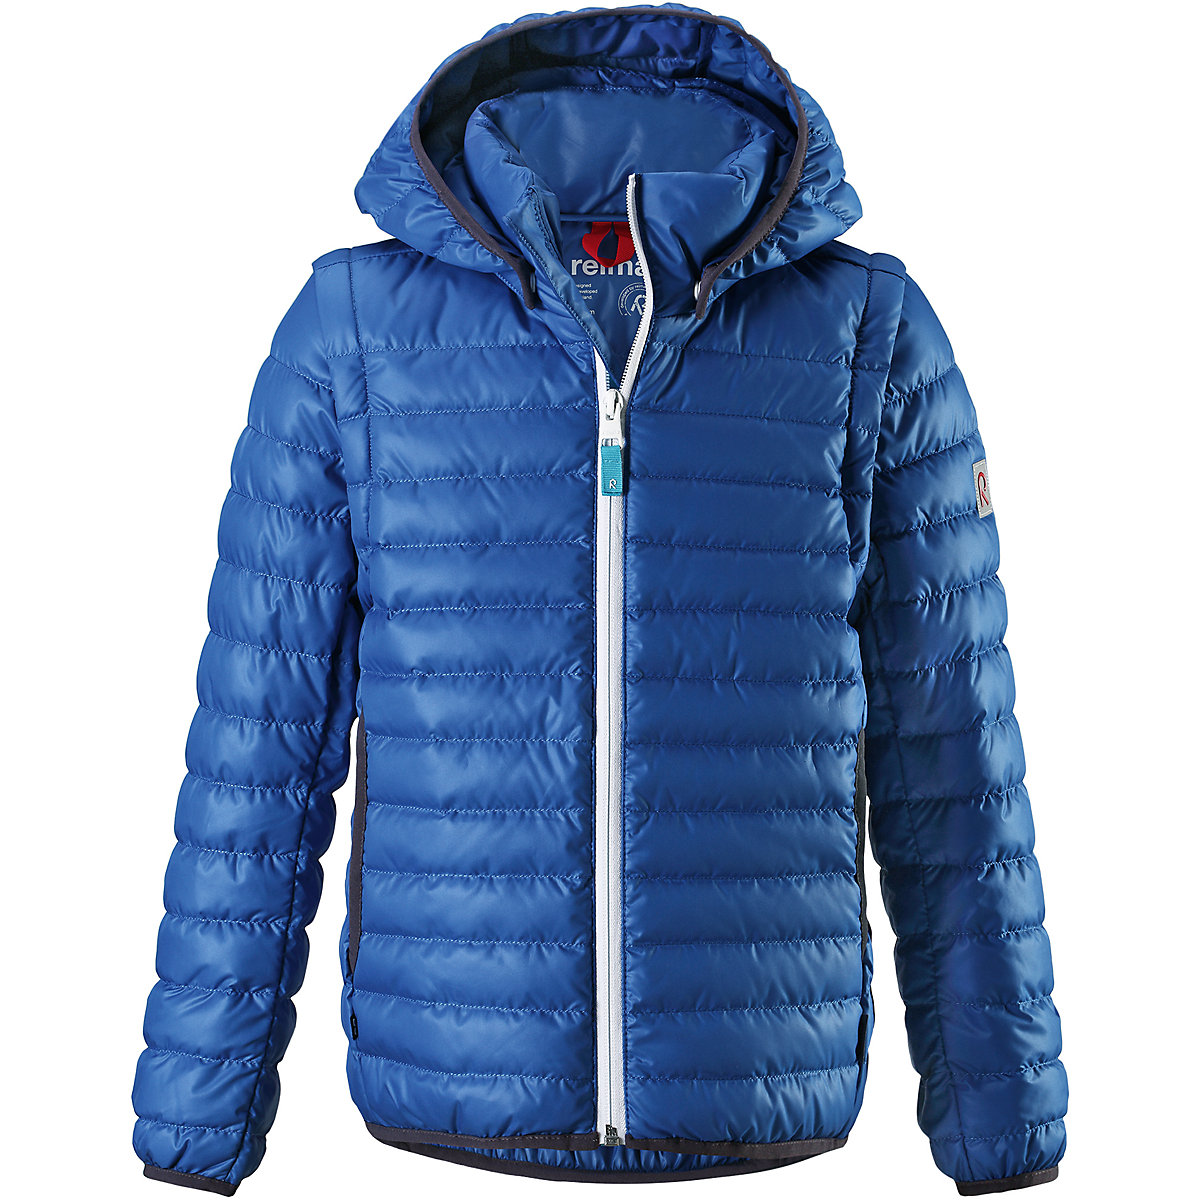 REIMA Jackets 7633890 for boys polyester winter  fur clothes boy vector brand ski jackets men outdoor thermal waterproof snowboard skiing jackets climbing snow winter clothes hxf70002